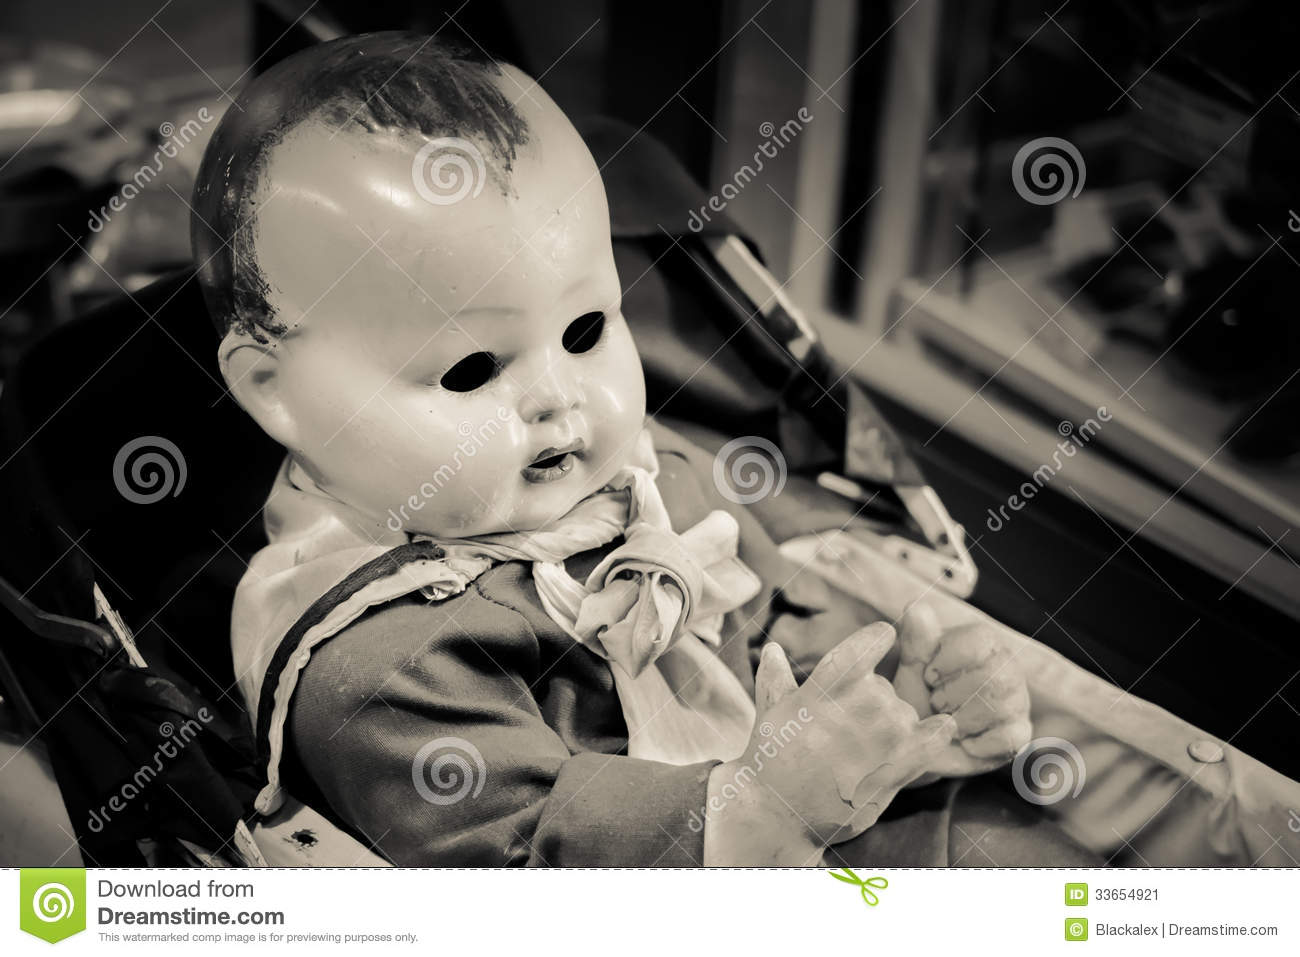 Evil Baby Doll Stock Image - Image: 33654921